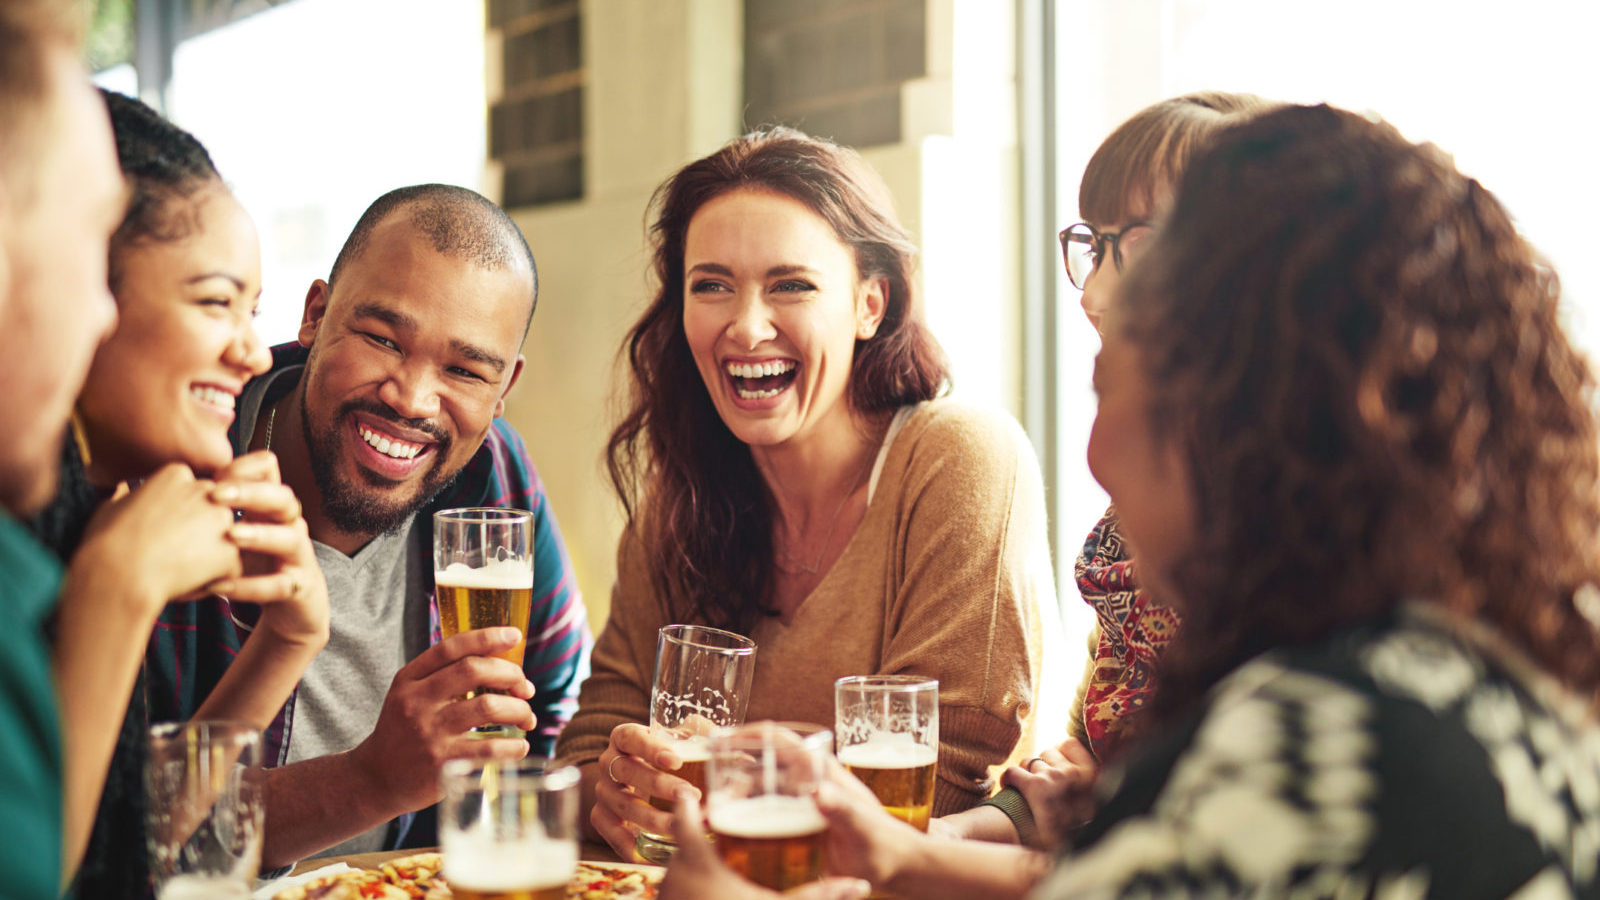 Shot of a group of friends hanging out and having beer